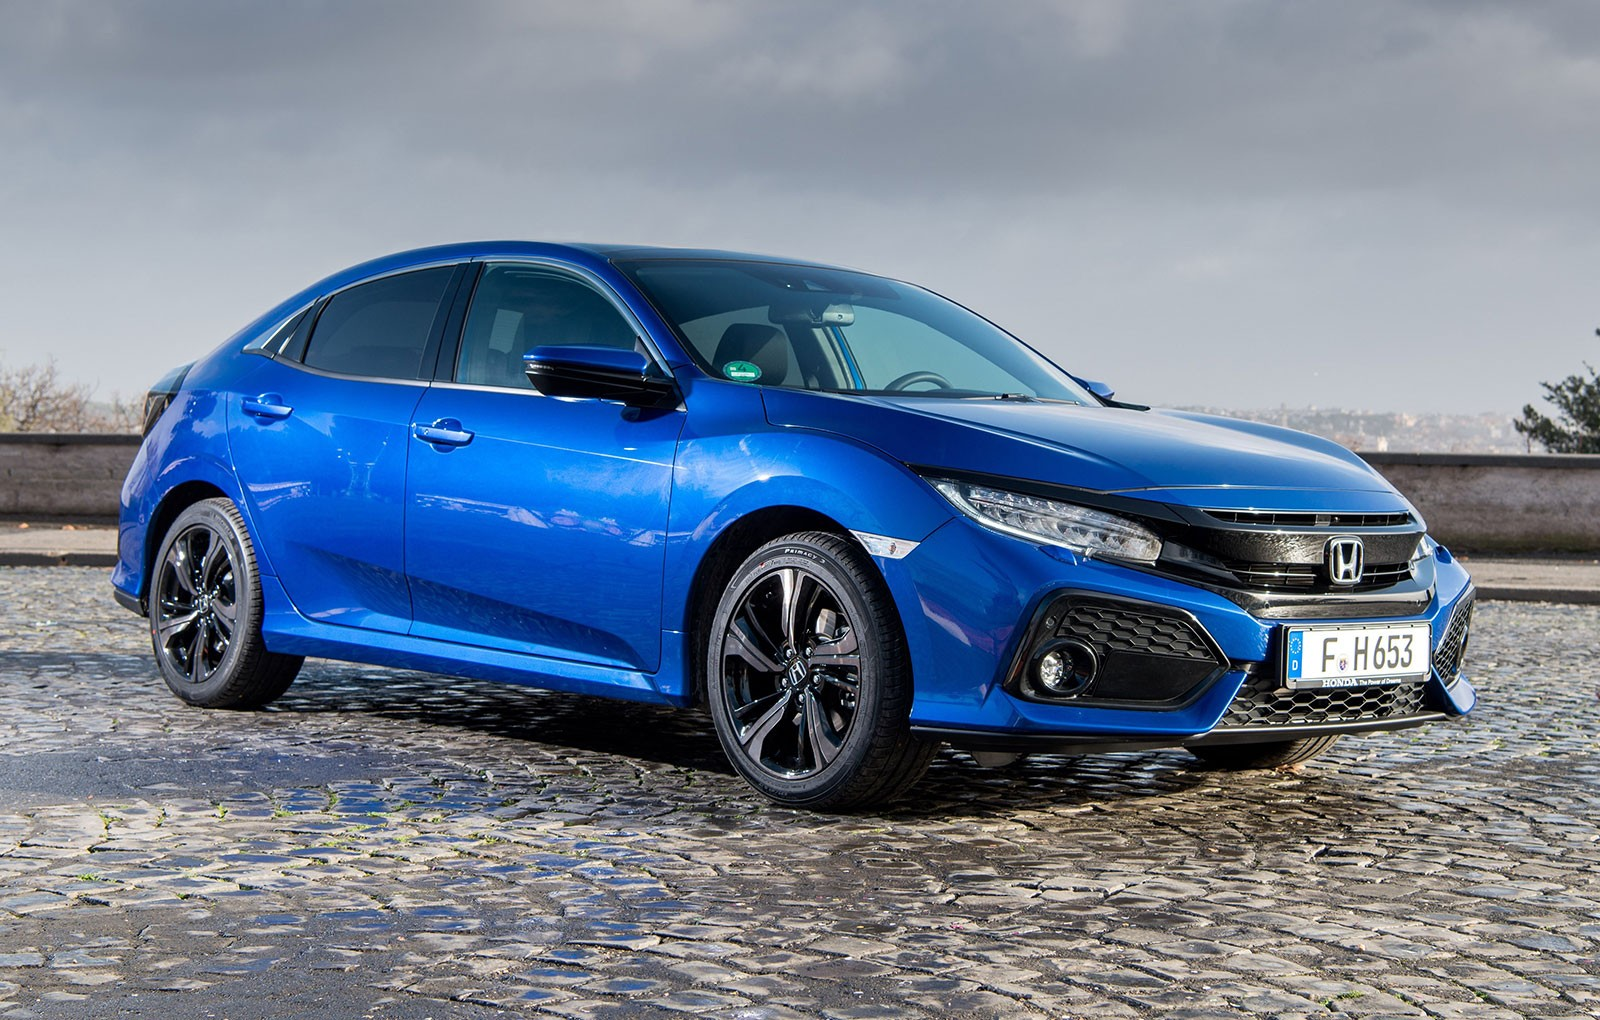 2019 Honda Civic Sedan Coupe Feature Refreshed Styling New Sport